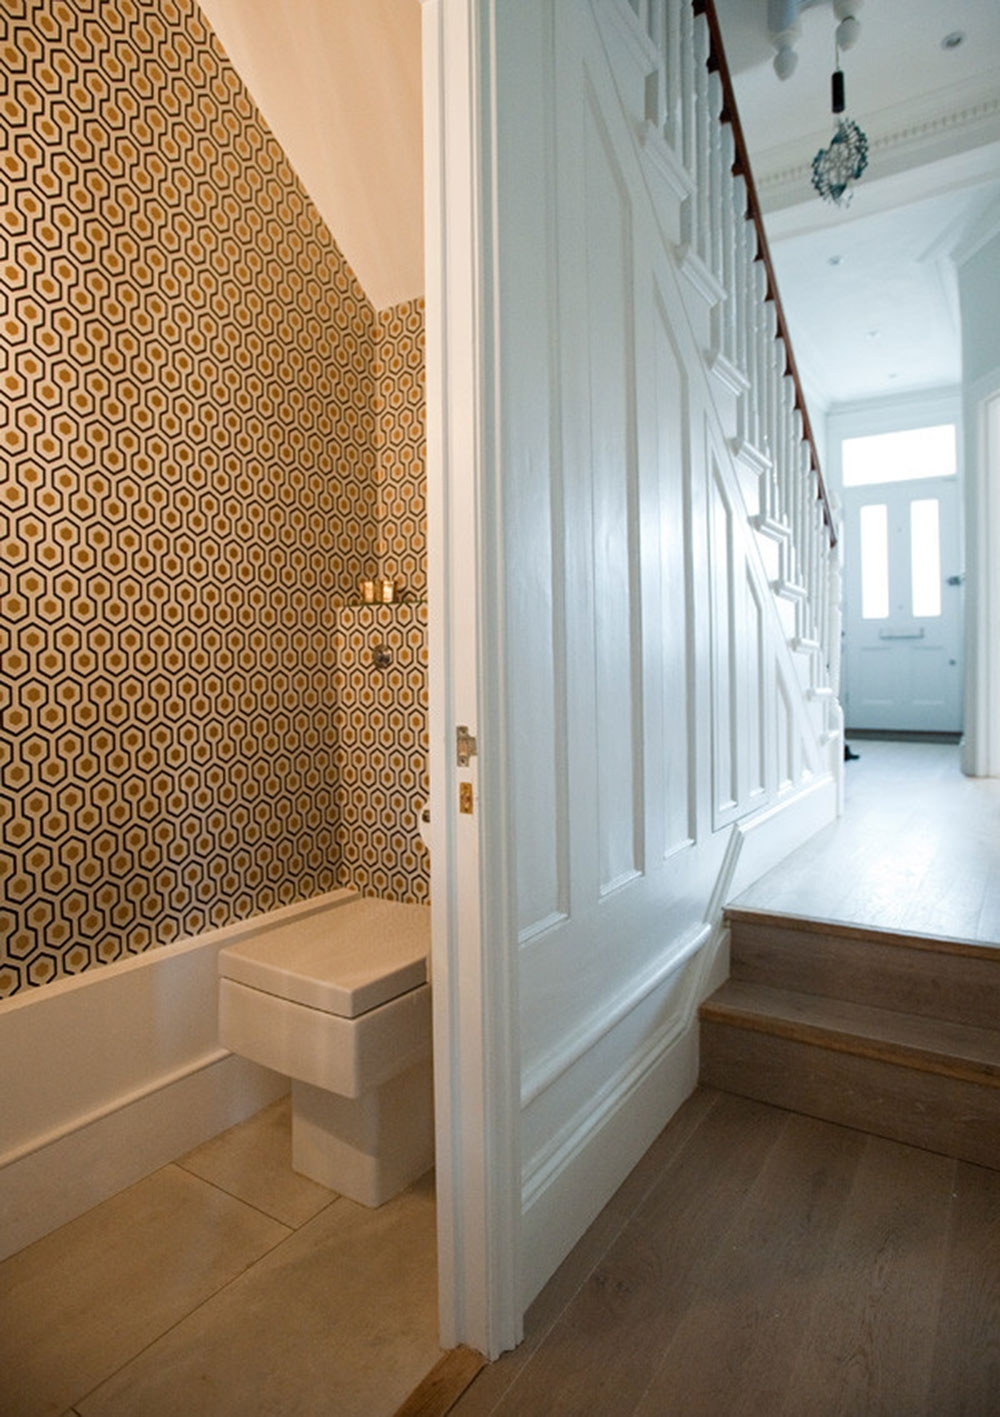 Bathroom Under Stairs And Tips And Best Practices For This Space 30+ Bathroom Under Stairs Design Inspirations